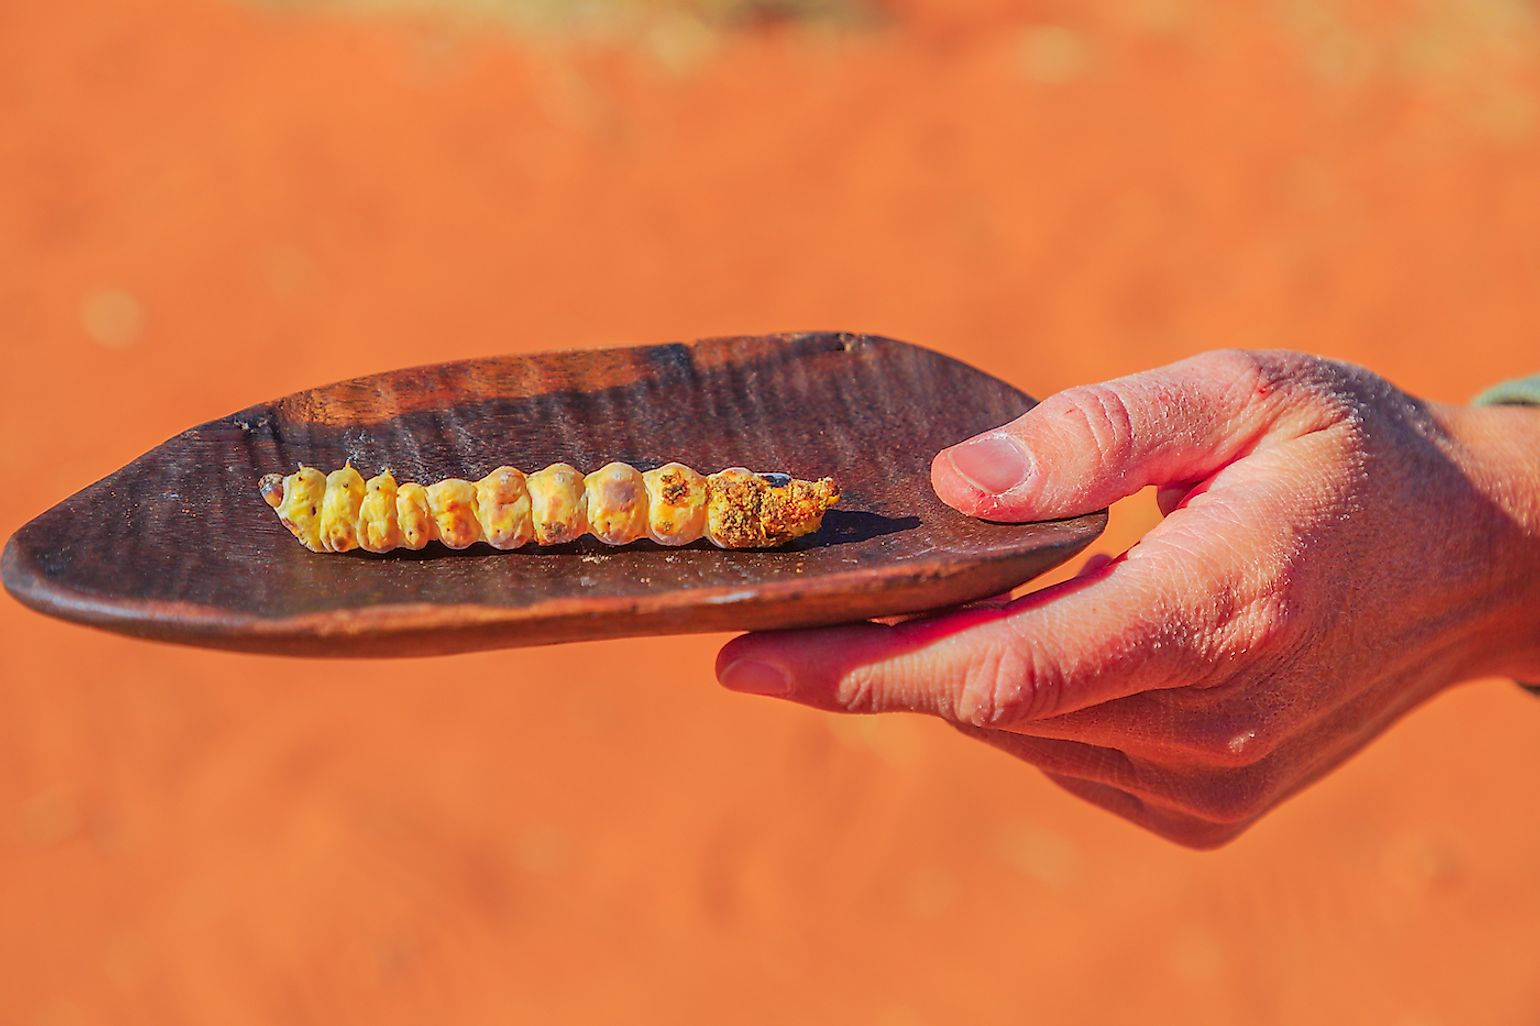 Grilled Witchetty grub larvae. Image credit: Benny Marty/Shutterstock.com